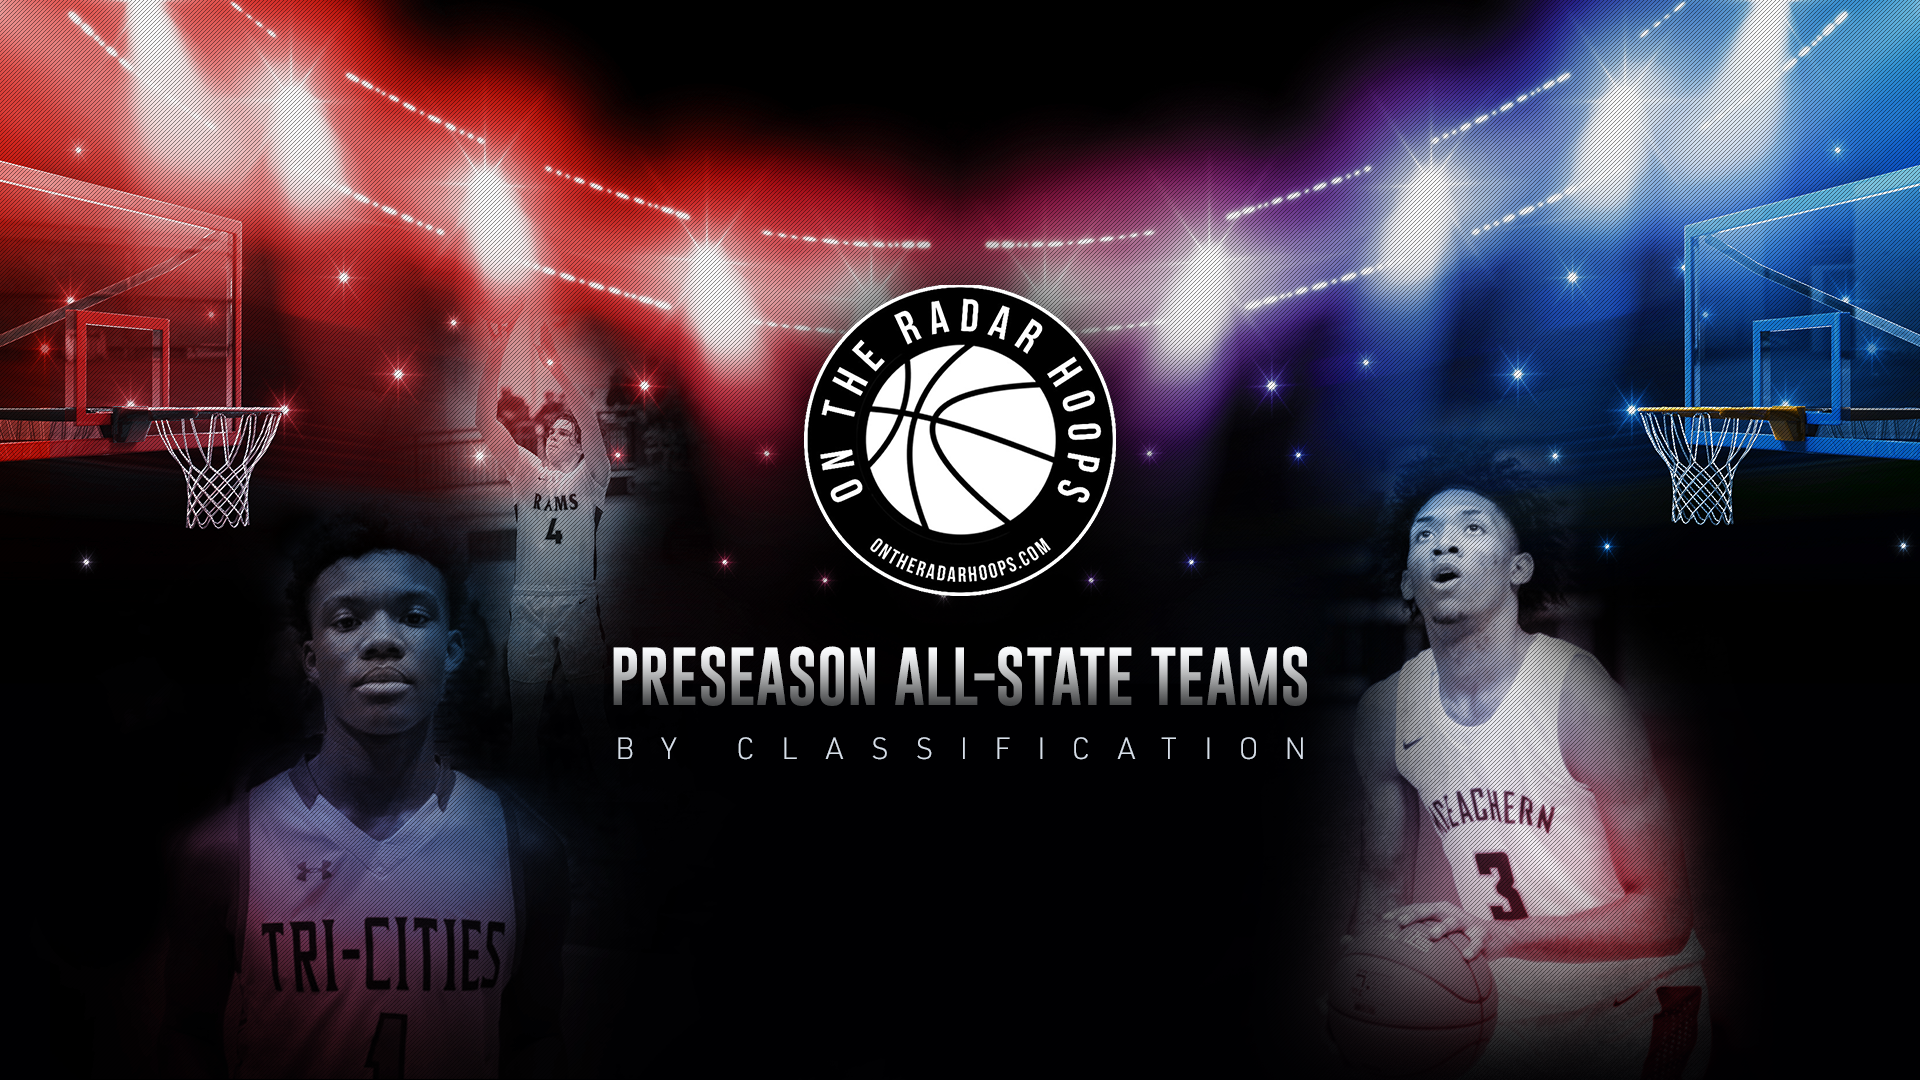 All-State Teams by Classification